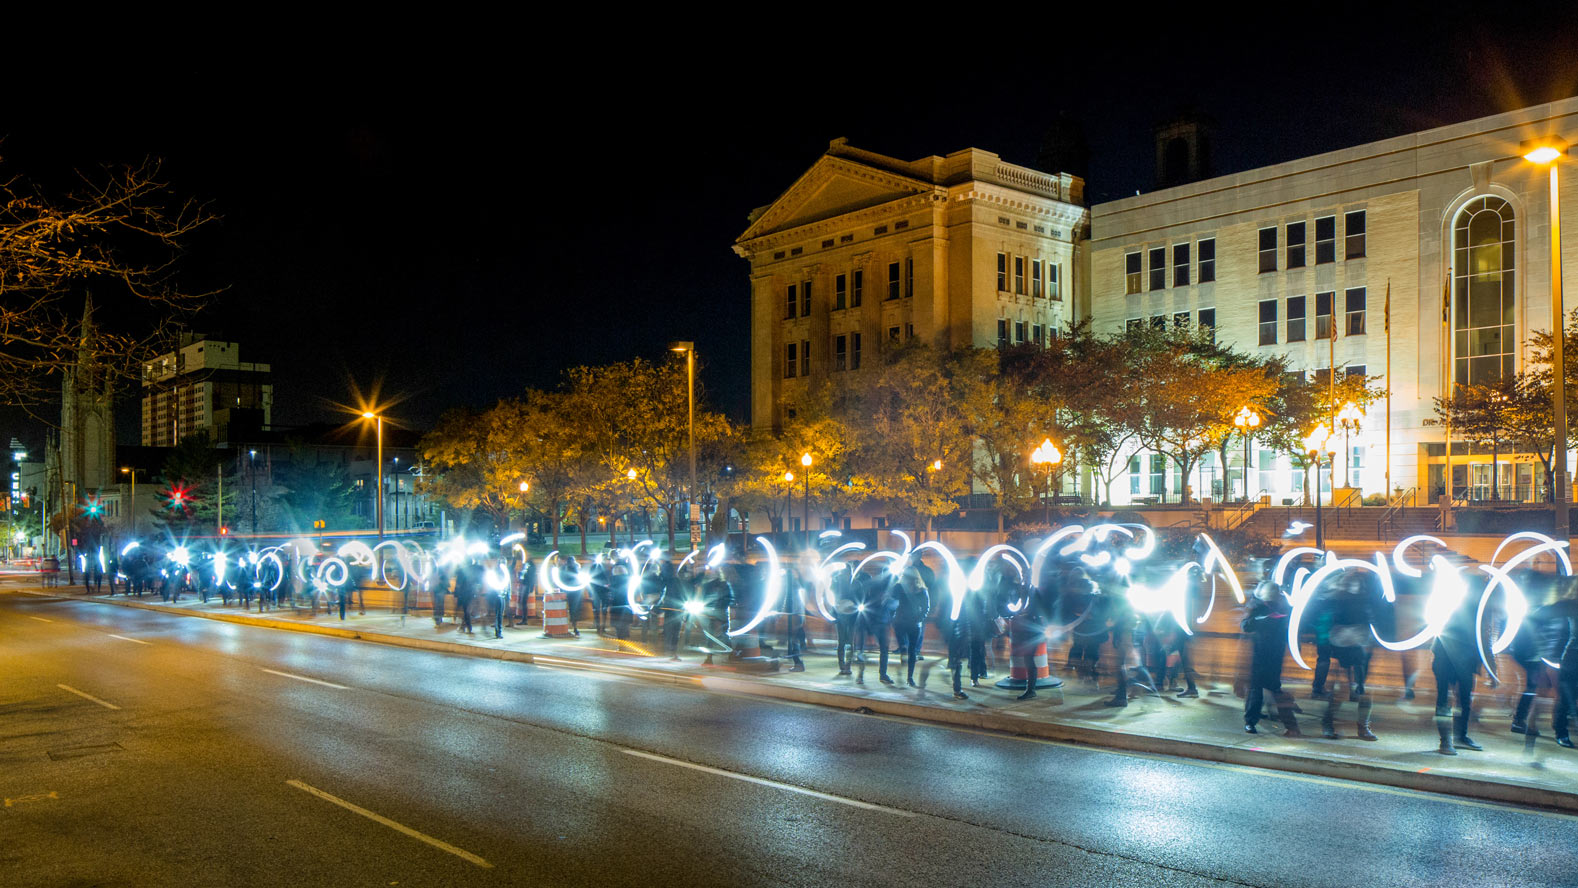 Flash! guerrilla lighting on the North Avenue median. Photo: Karl Connolly Photography